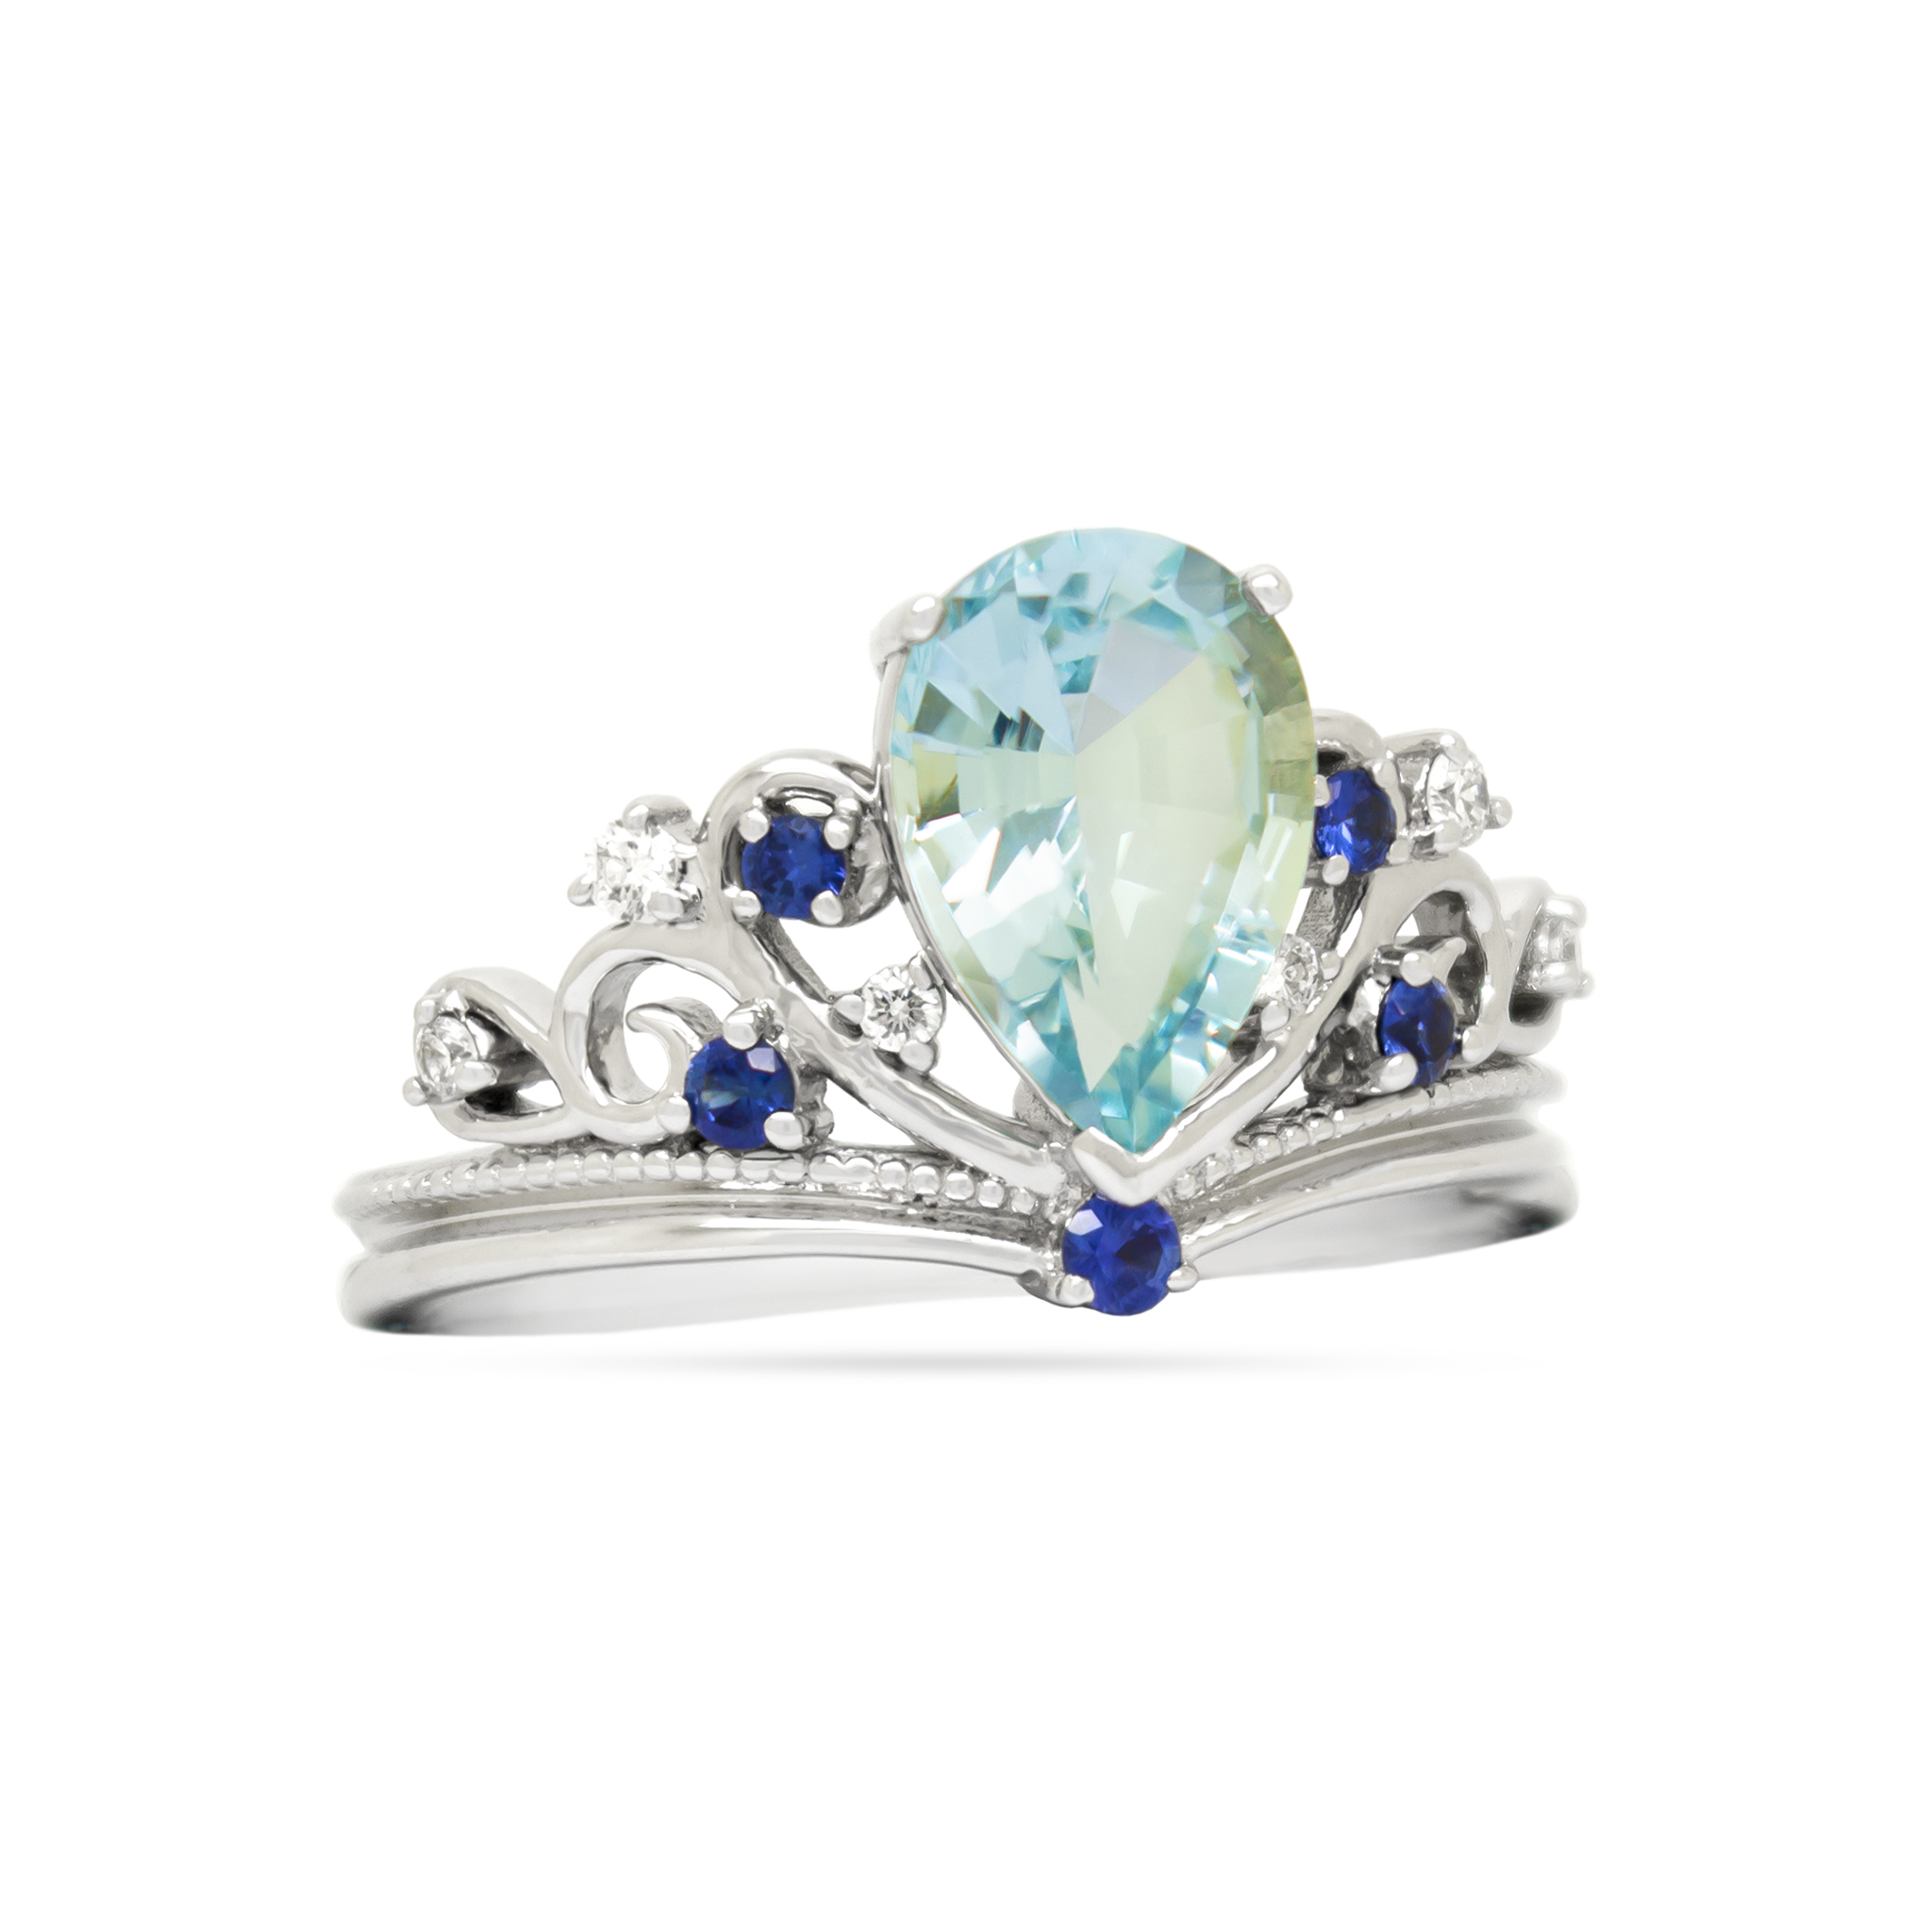 Aquamarine and Sapphire Crown Ring